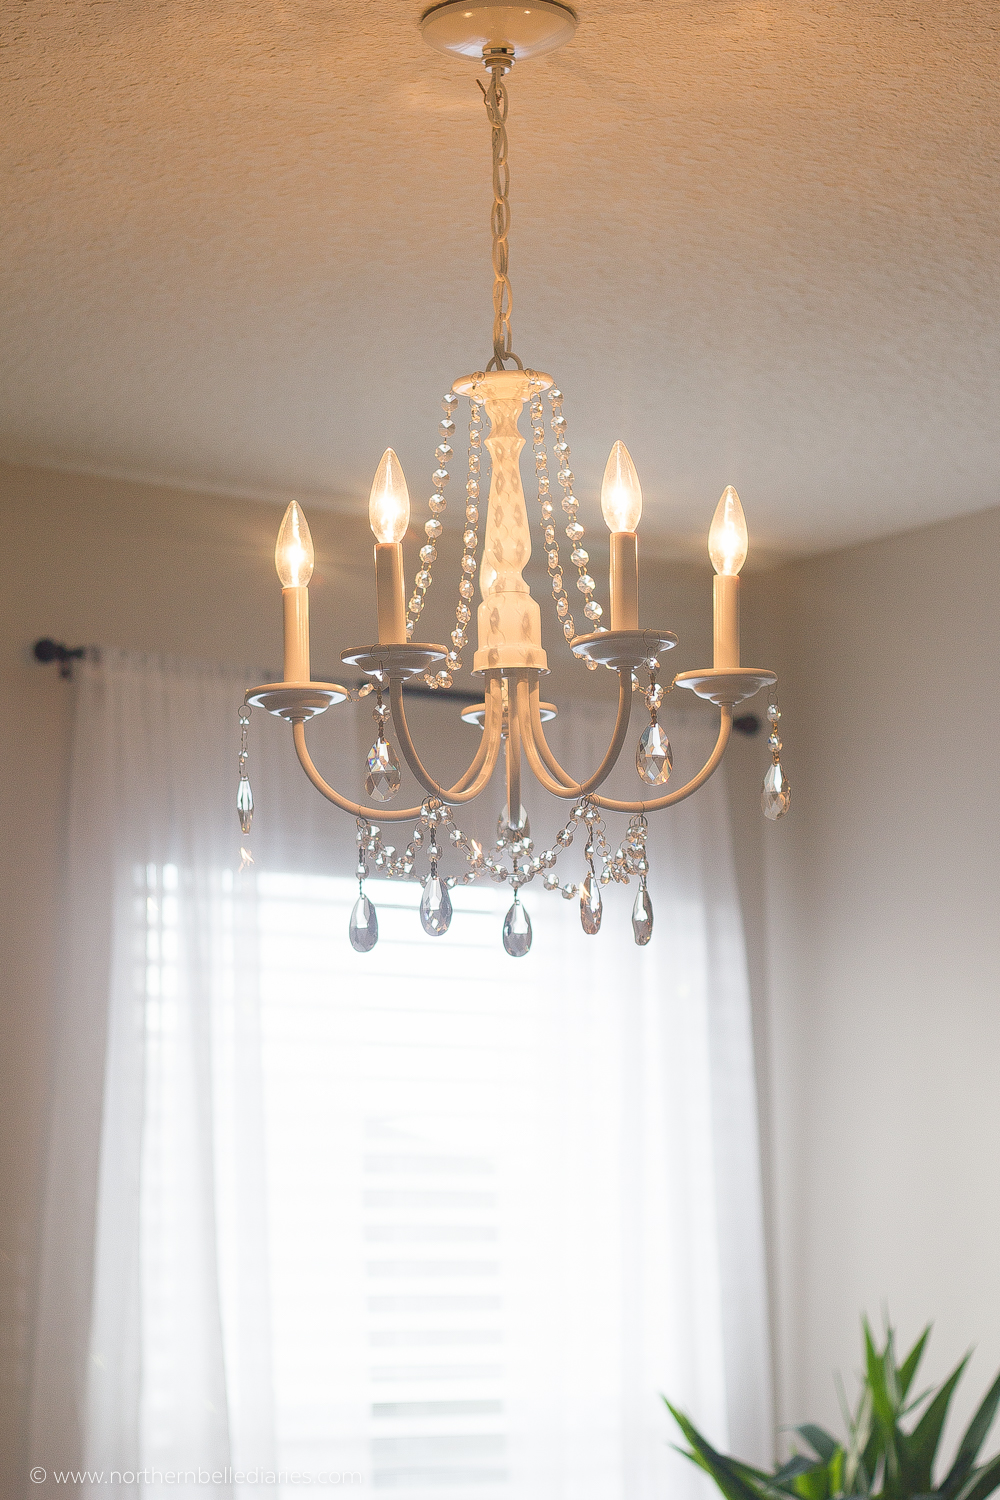 DIY Crystal Chandelier (easy tutorial)